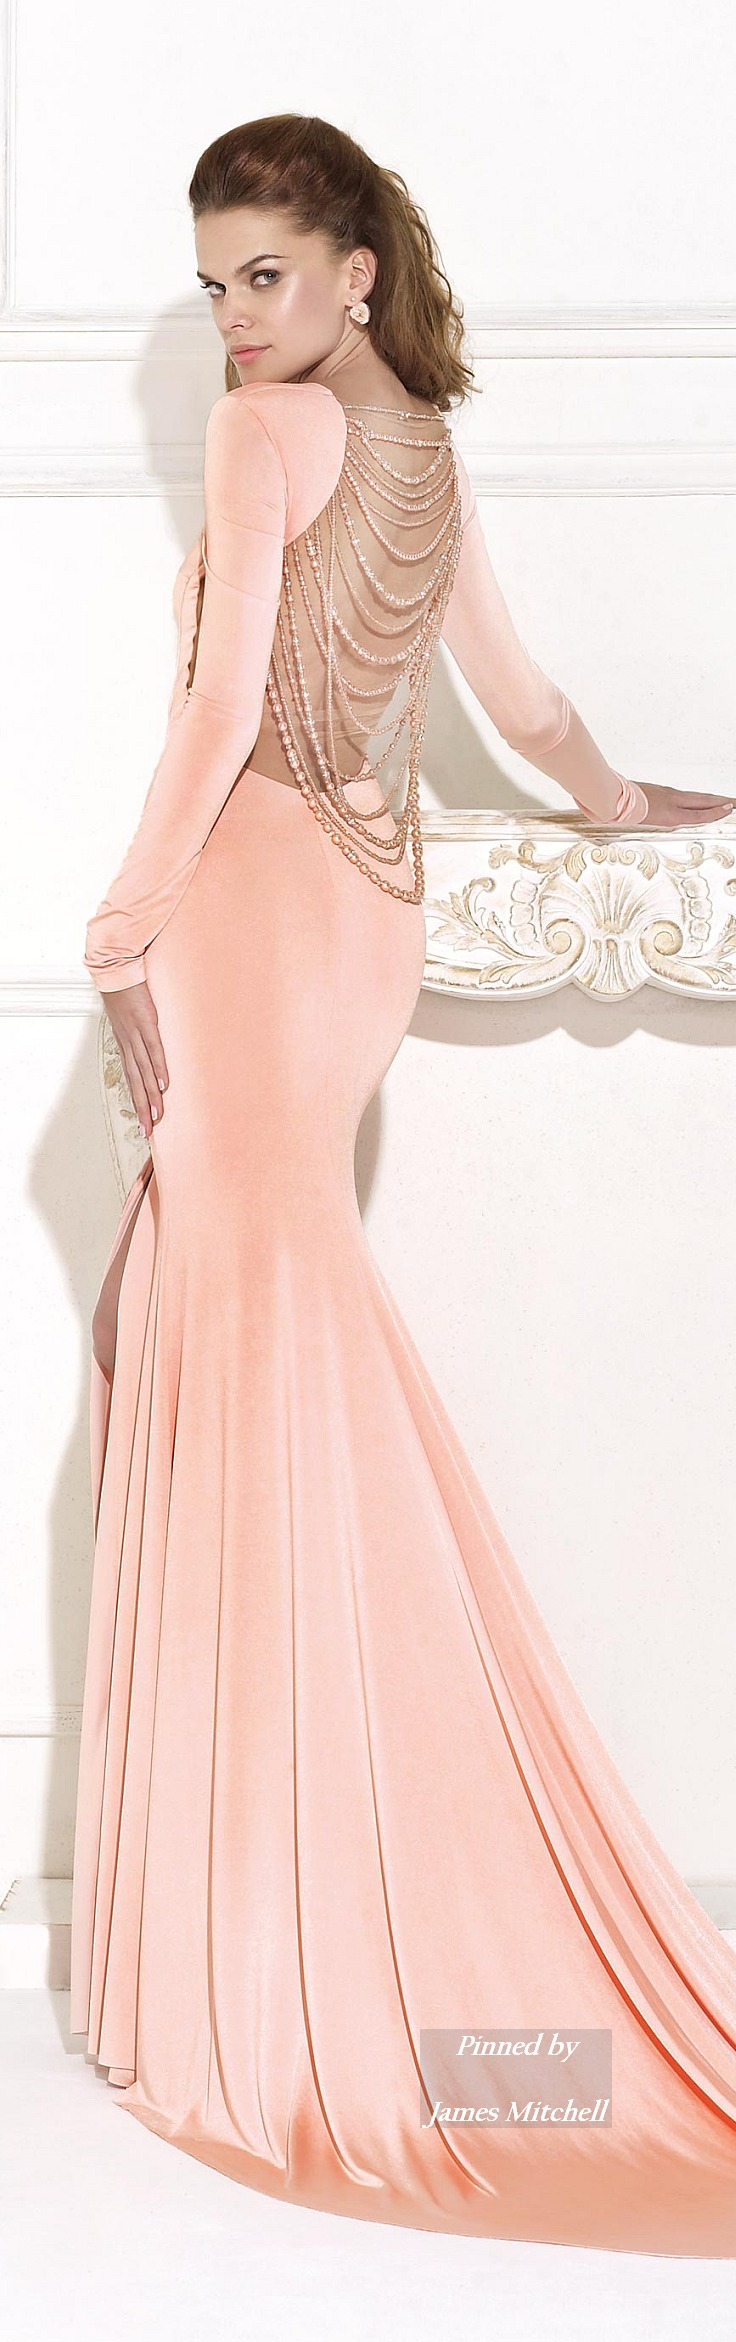 Tarik Ediz 2015 Collection | World of Couture | Pinterest ...